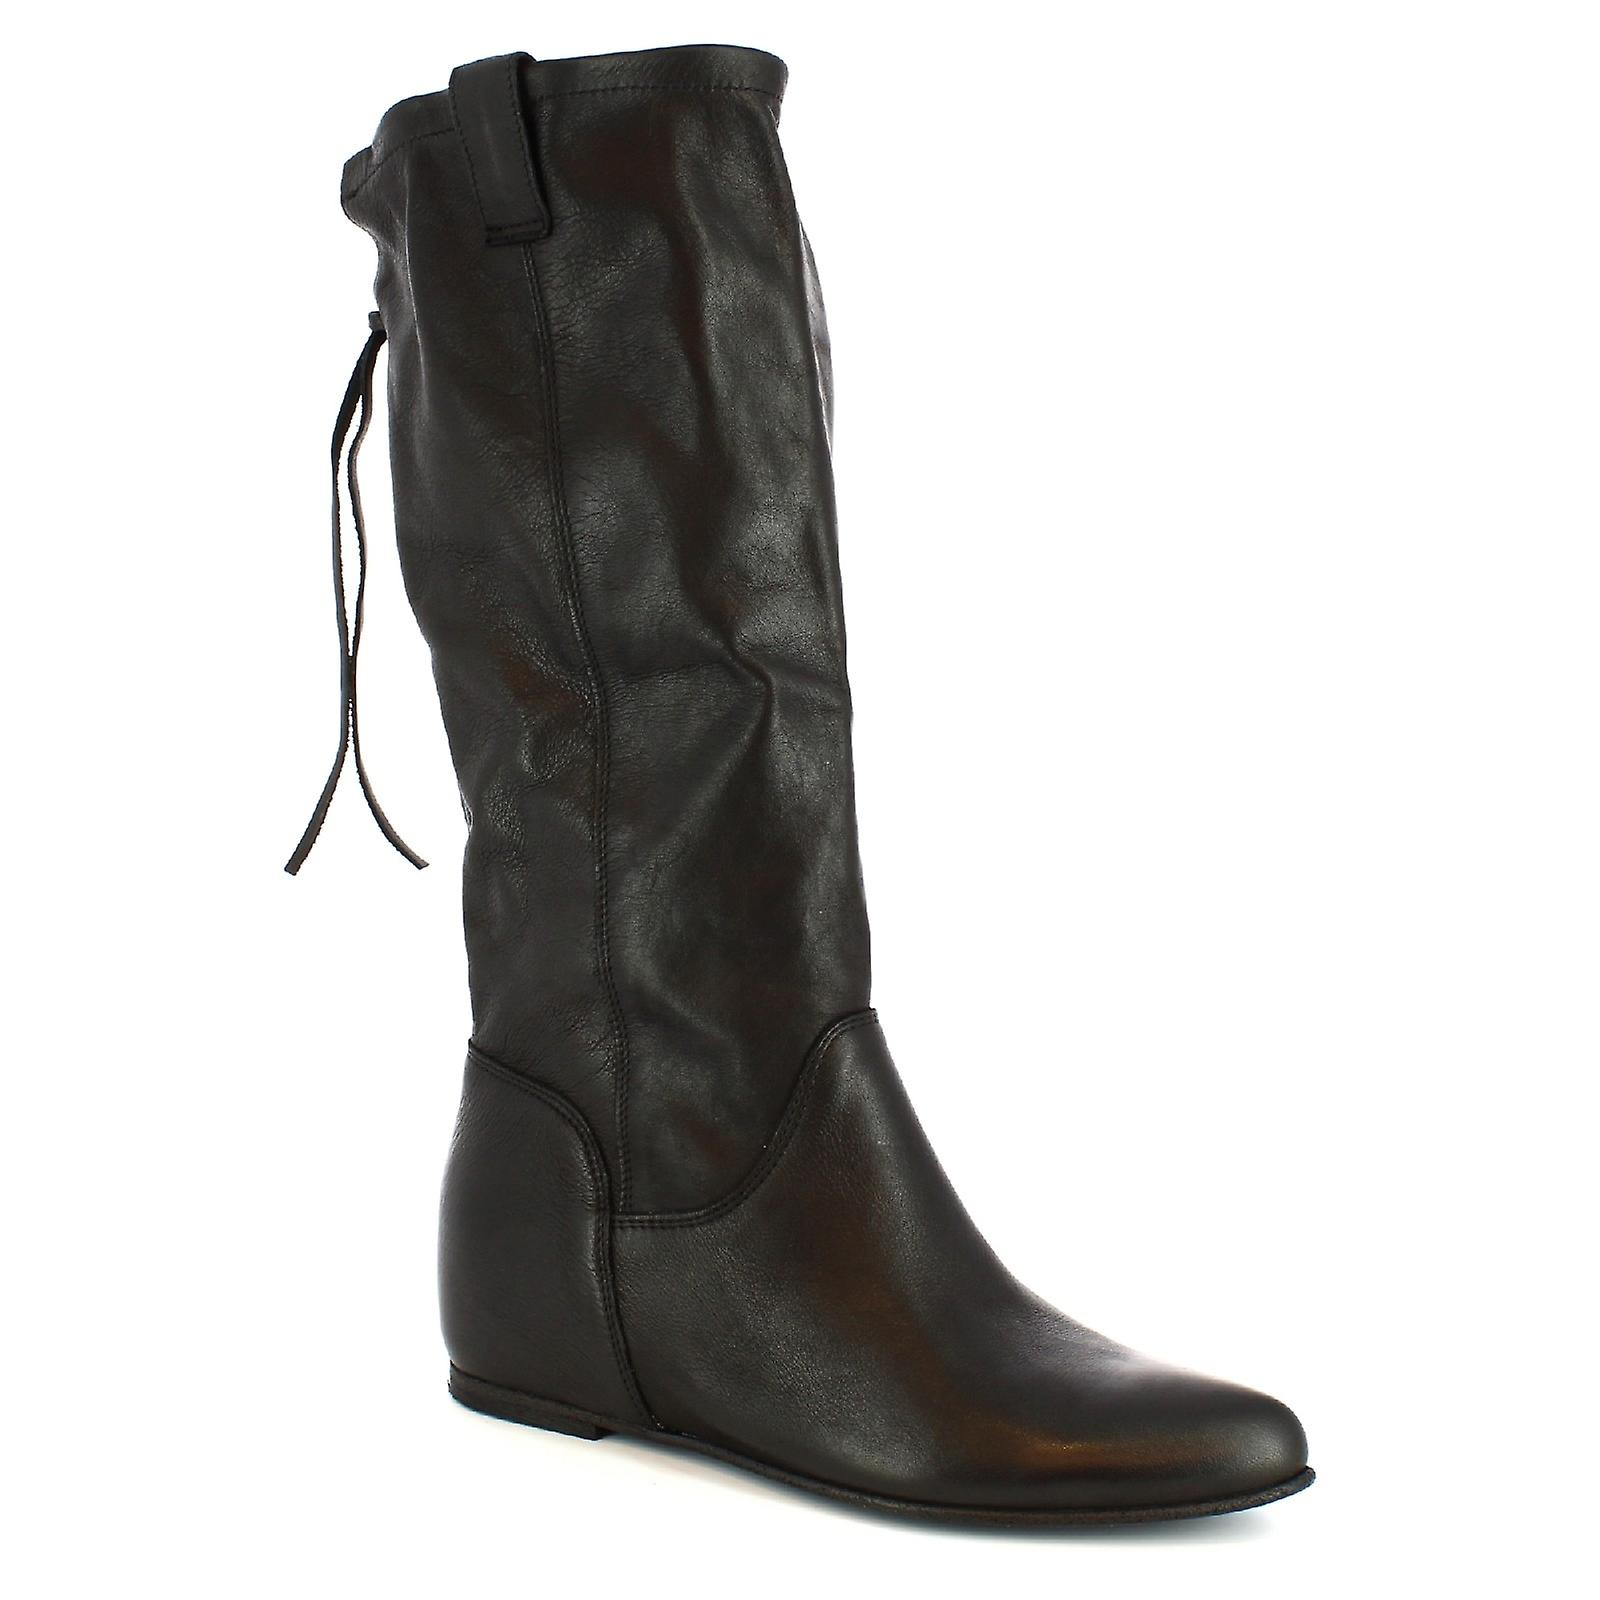 Leonardo Shoes Women's handmade boots inside platform in black calf leather HeqCN